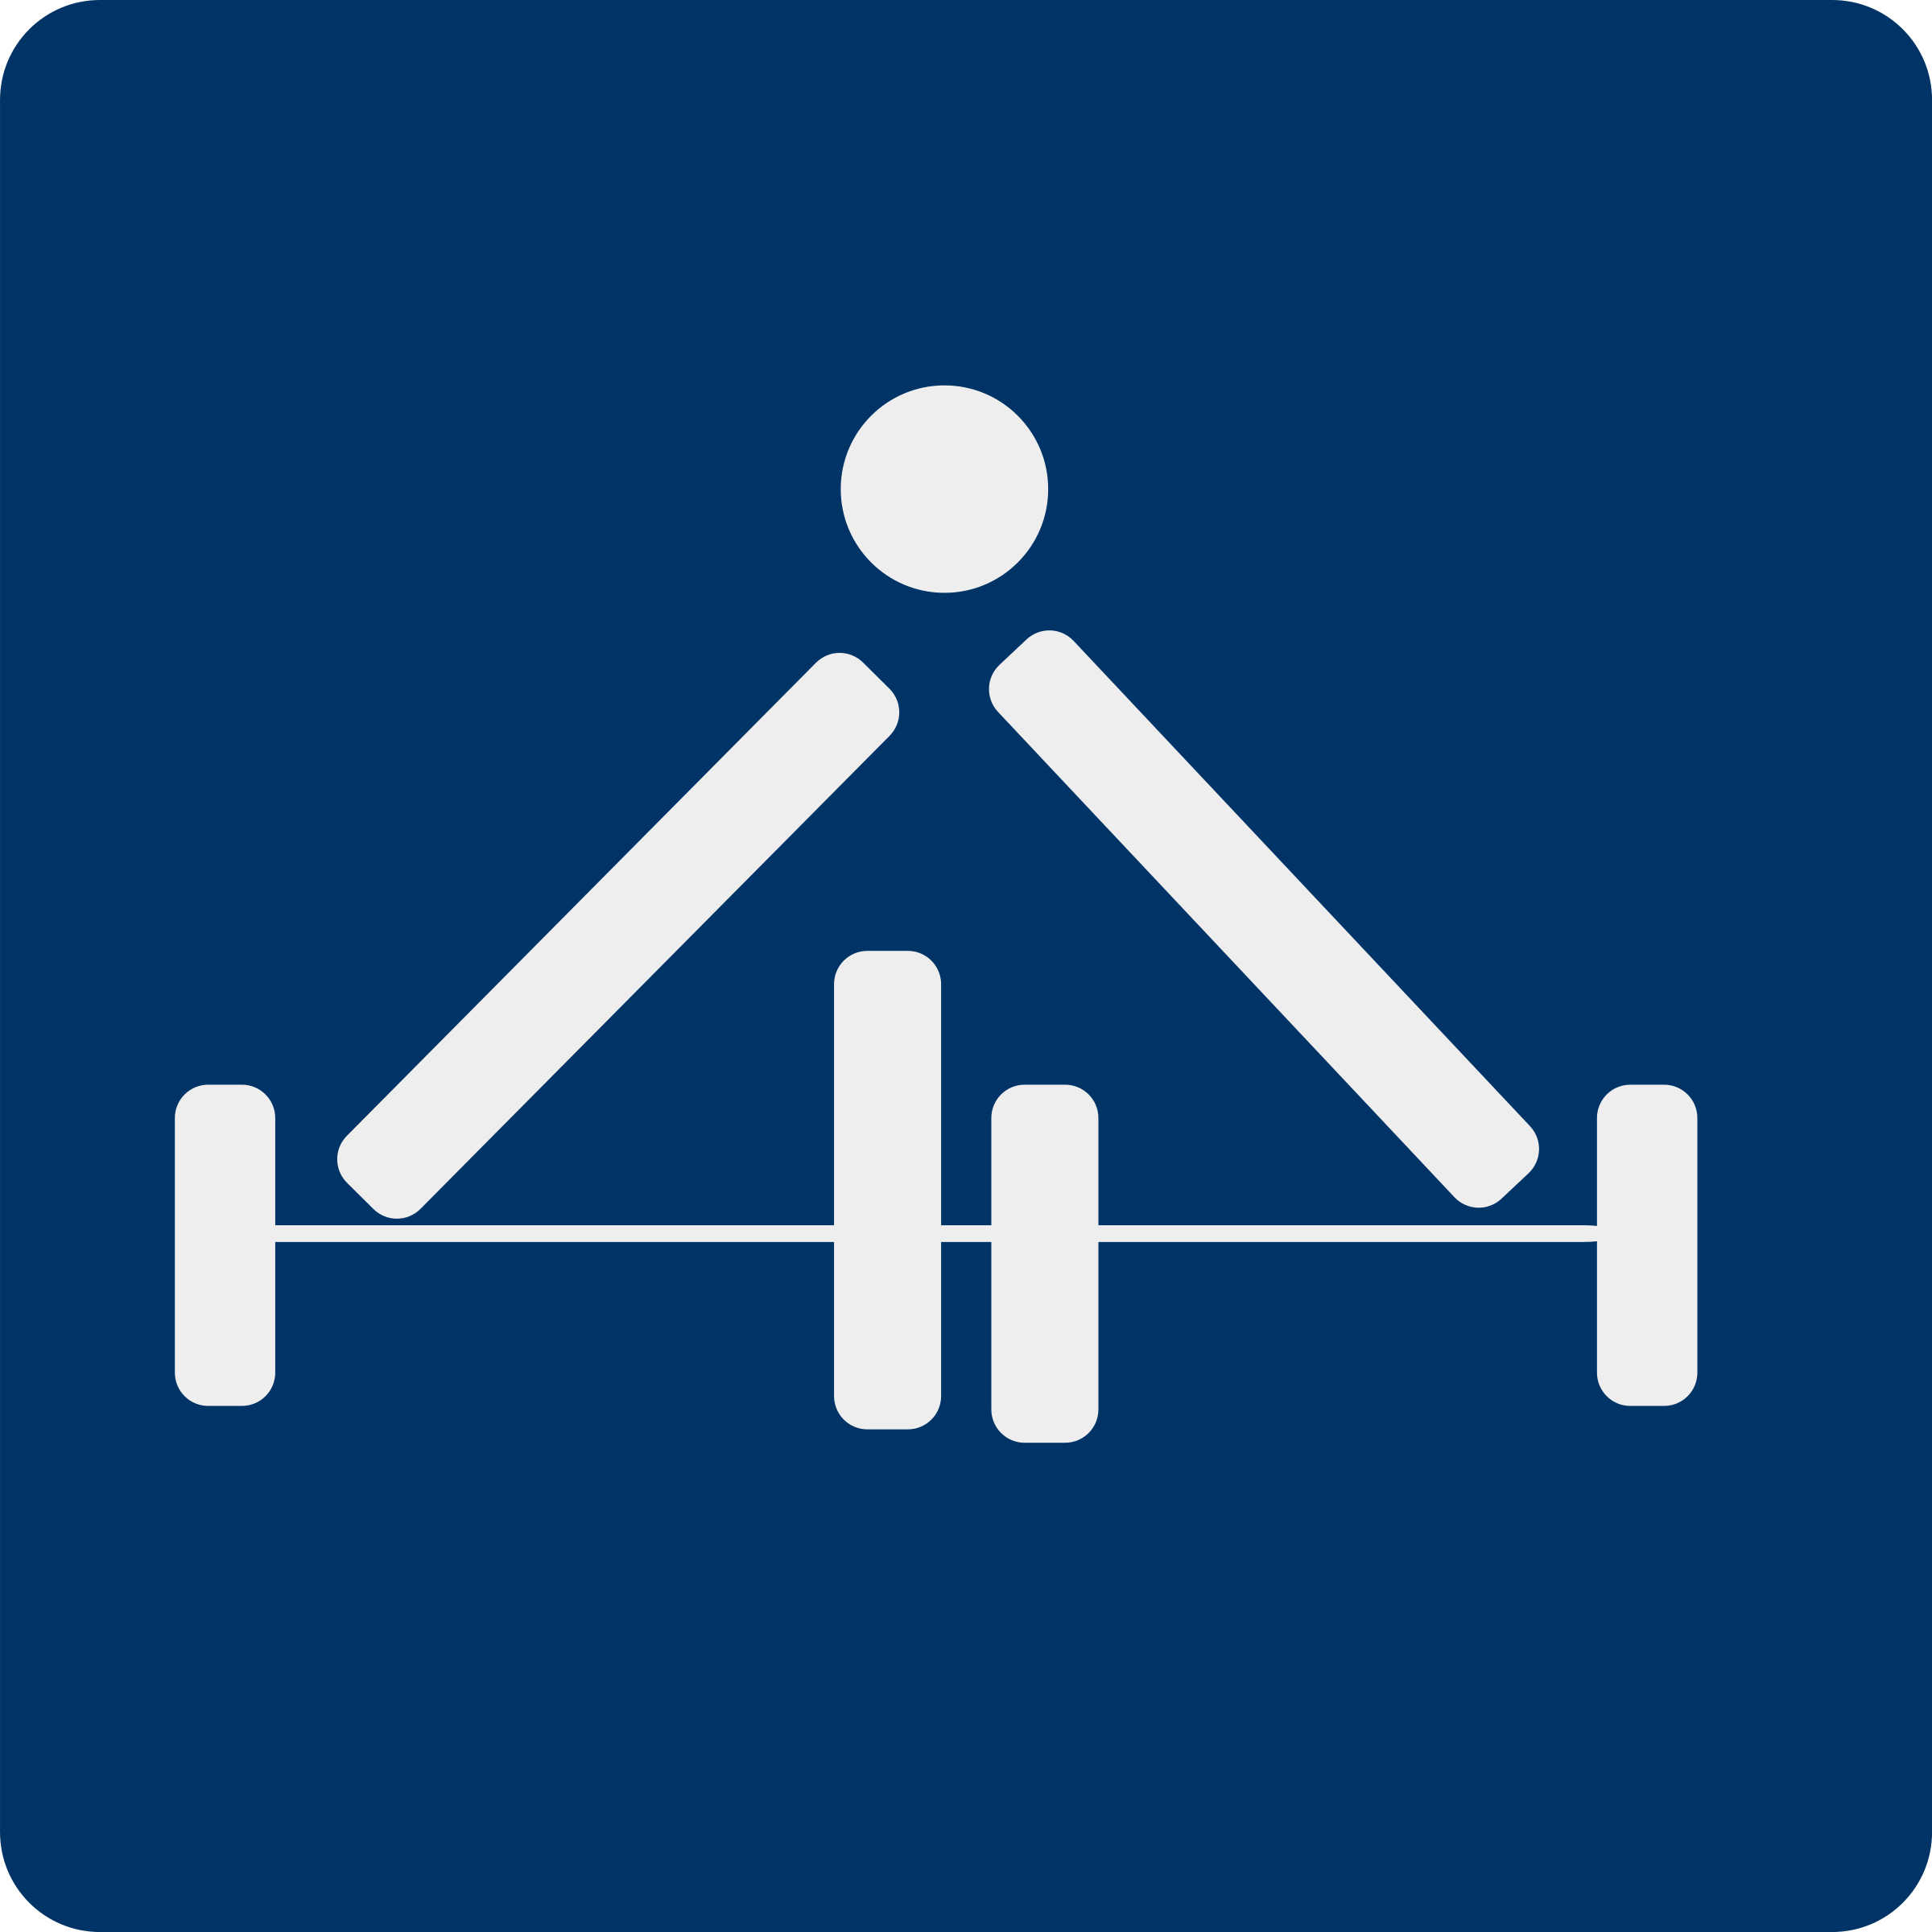 weight lifting pictogram by shokunin